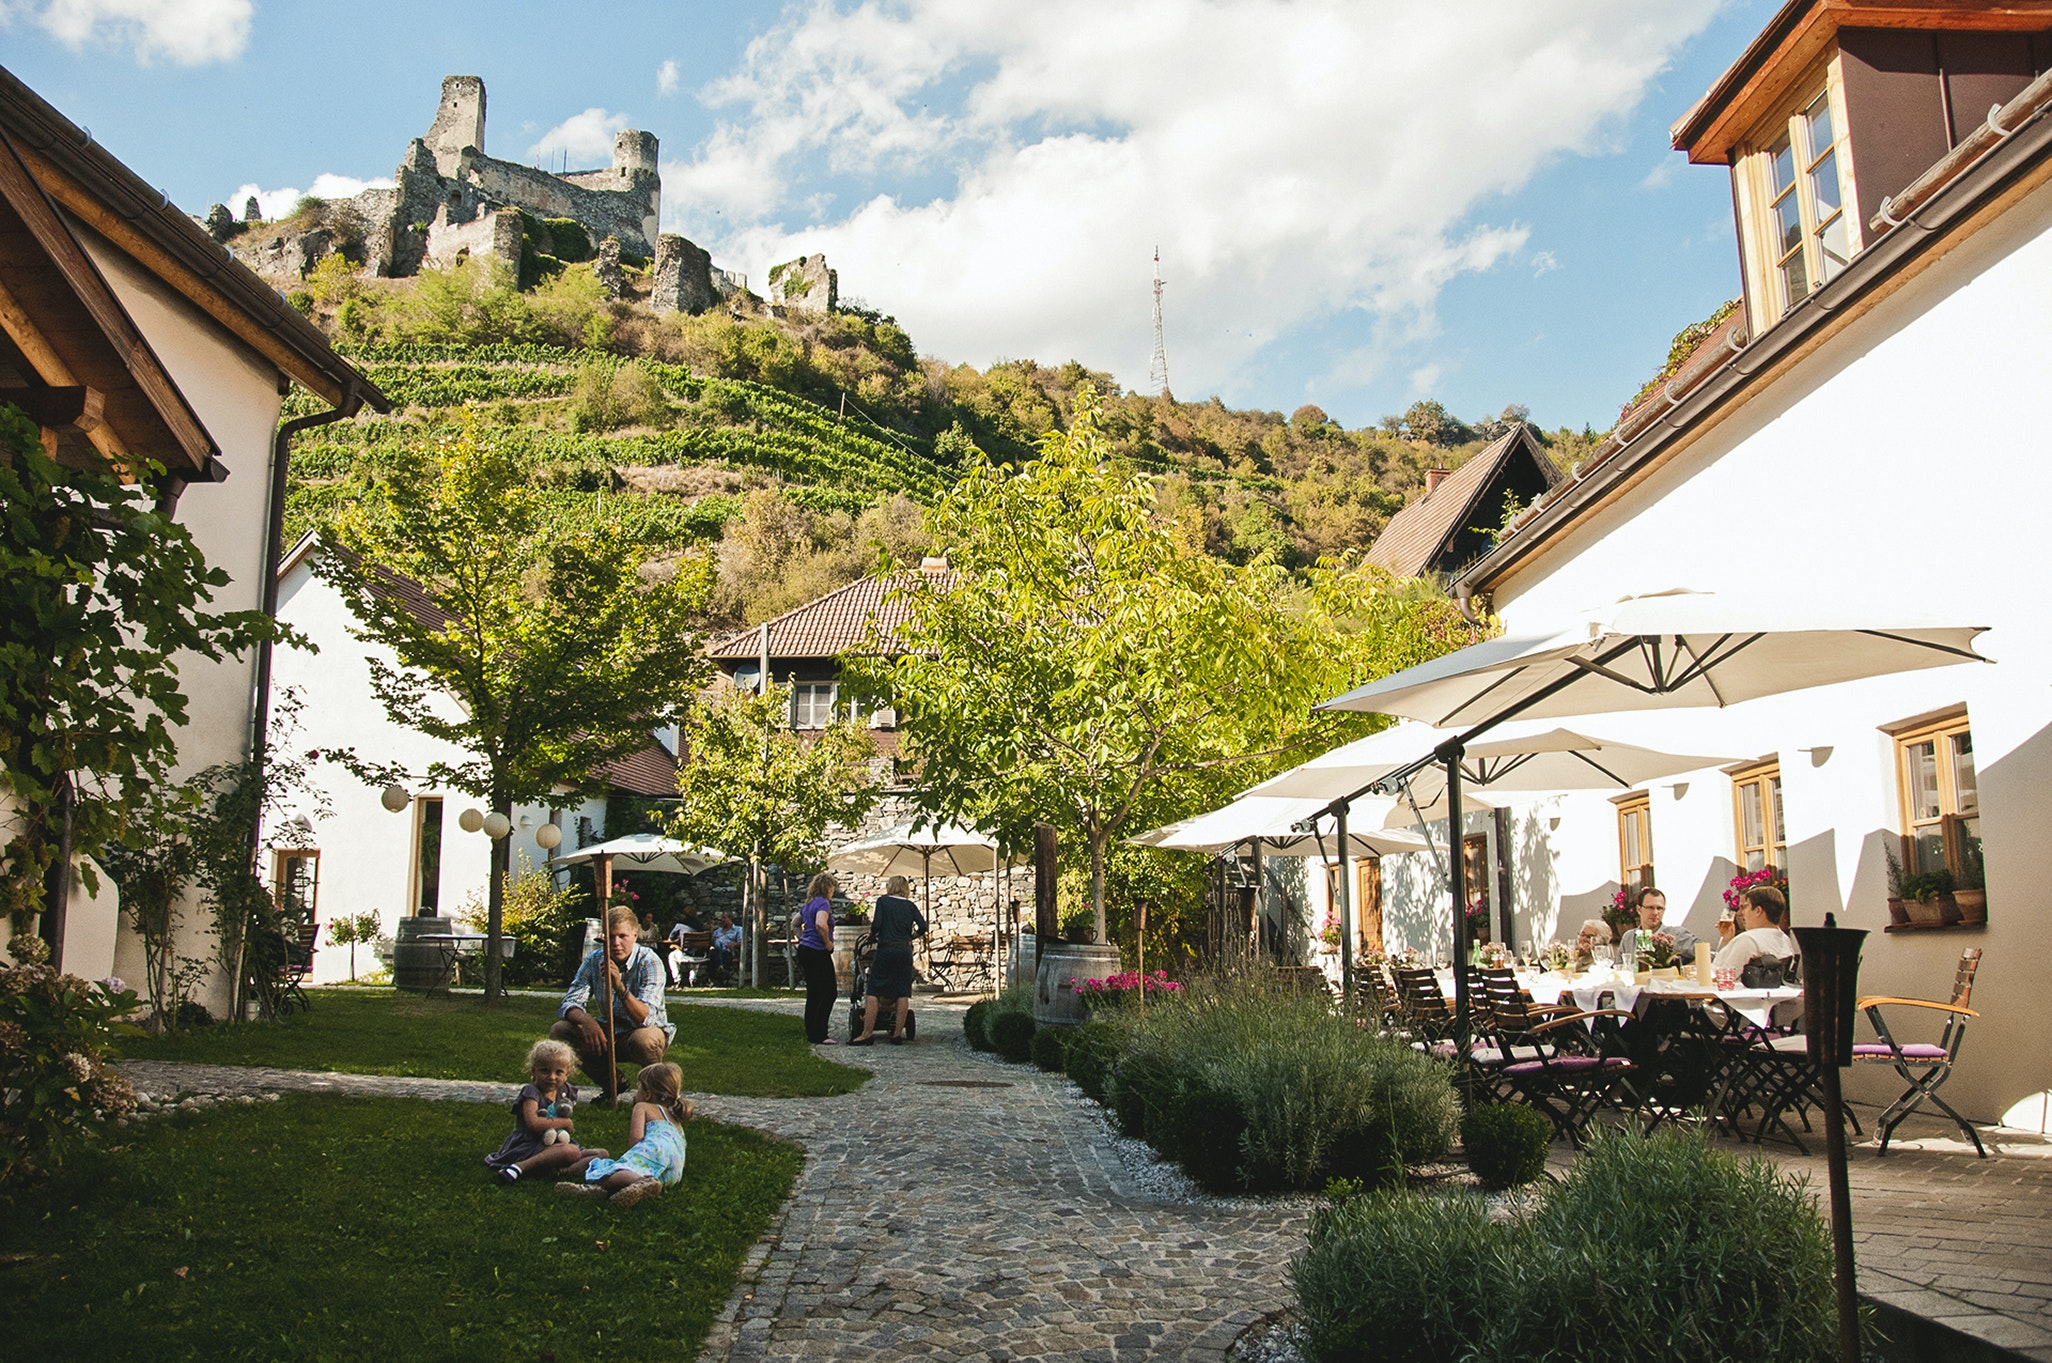 Weingut Nigl is situated in lower Austria's Kremstal (Krems Valley), not far from the historic town of Krems.